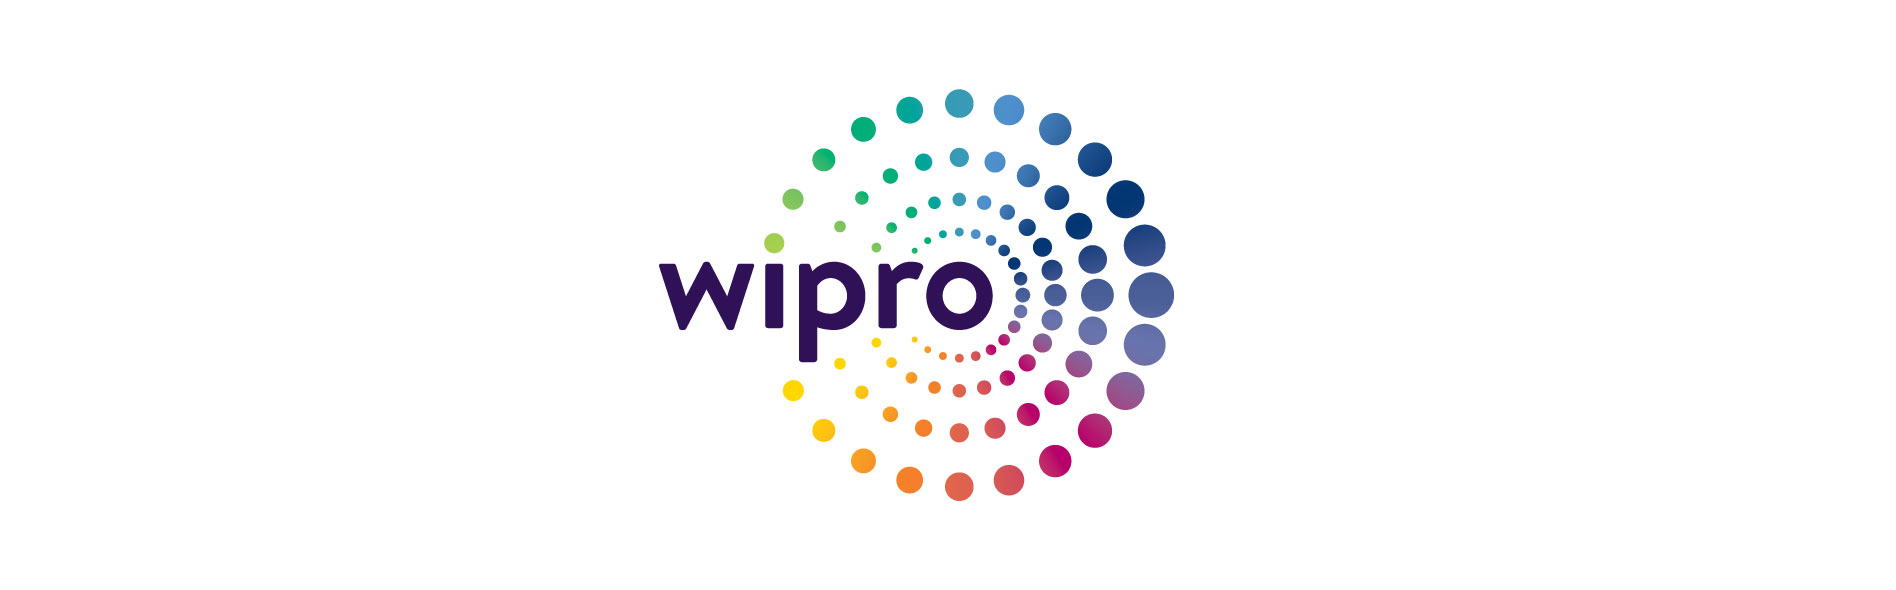 wipro Associate Mumbai